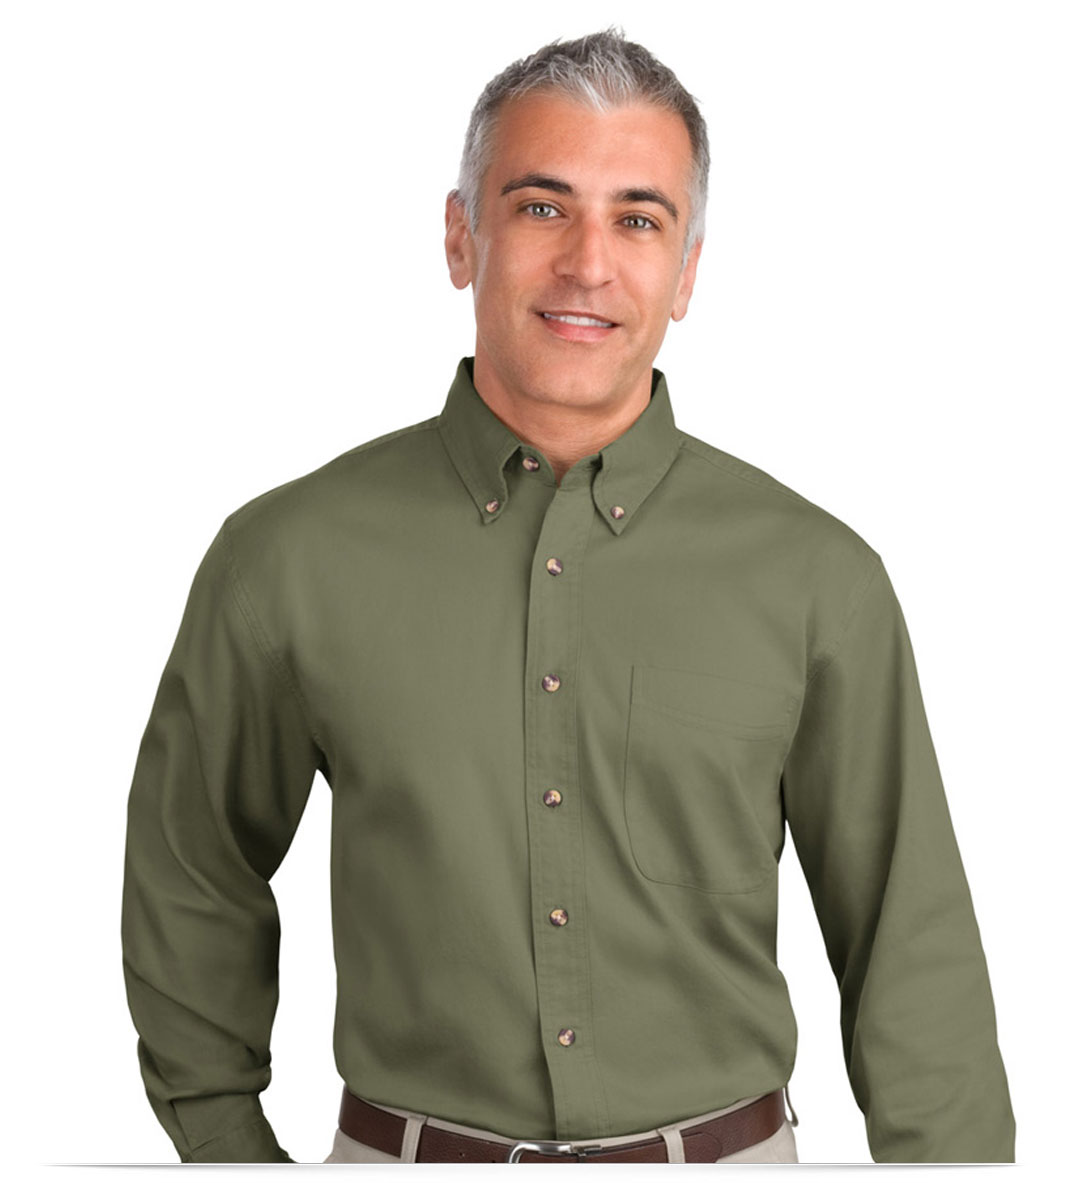 Buy custom embroidered work uniform shirts including personalized men's and  ladies brand name company shirts,